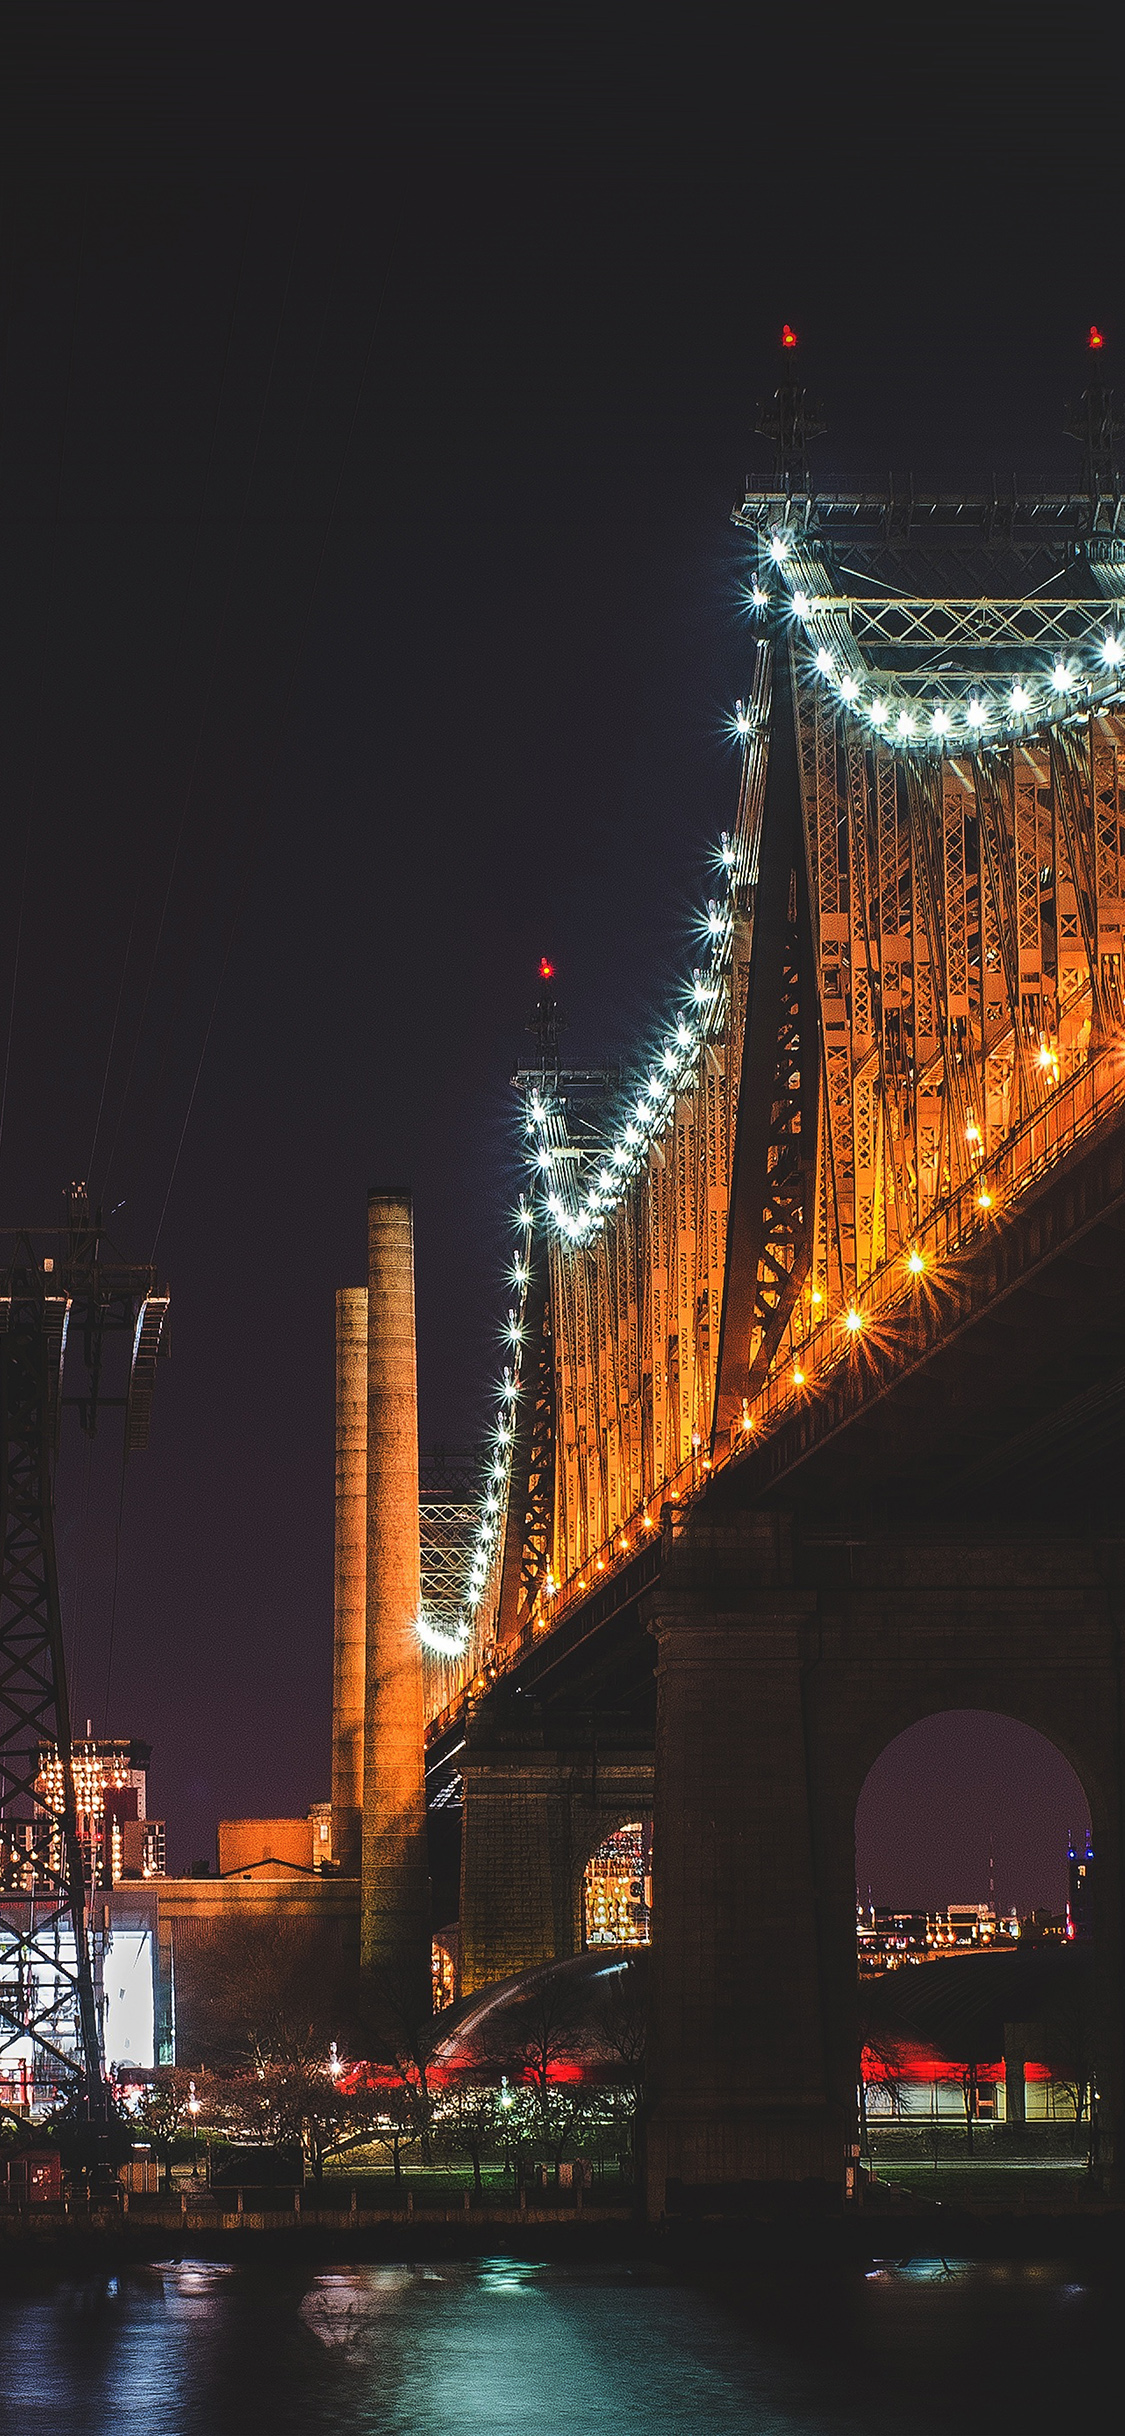 Papers Co Iphone Wallpaper Nf73 Bridge Night River City Lights